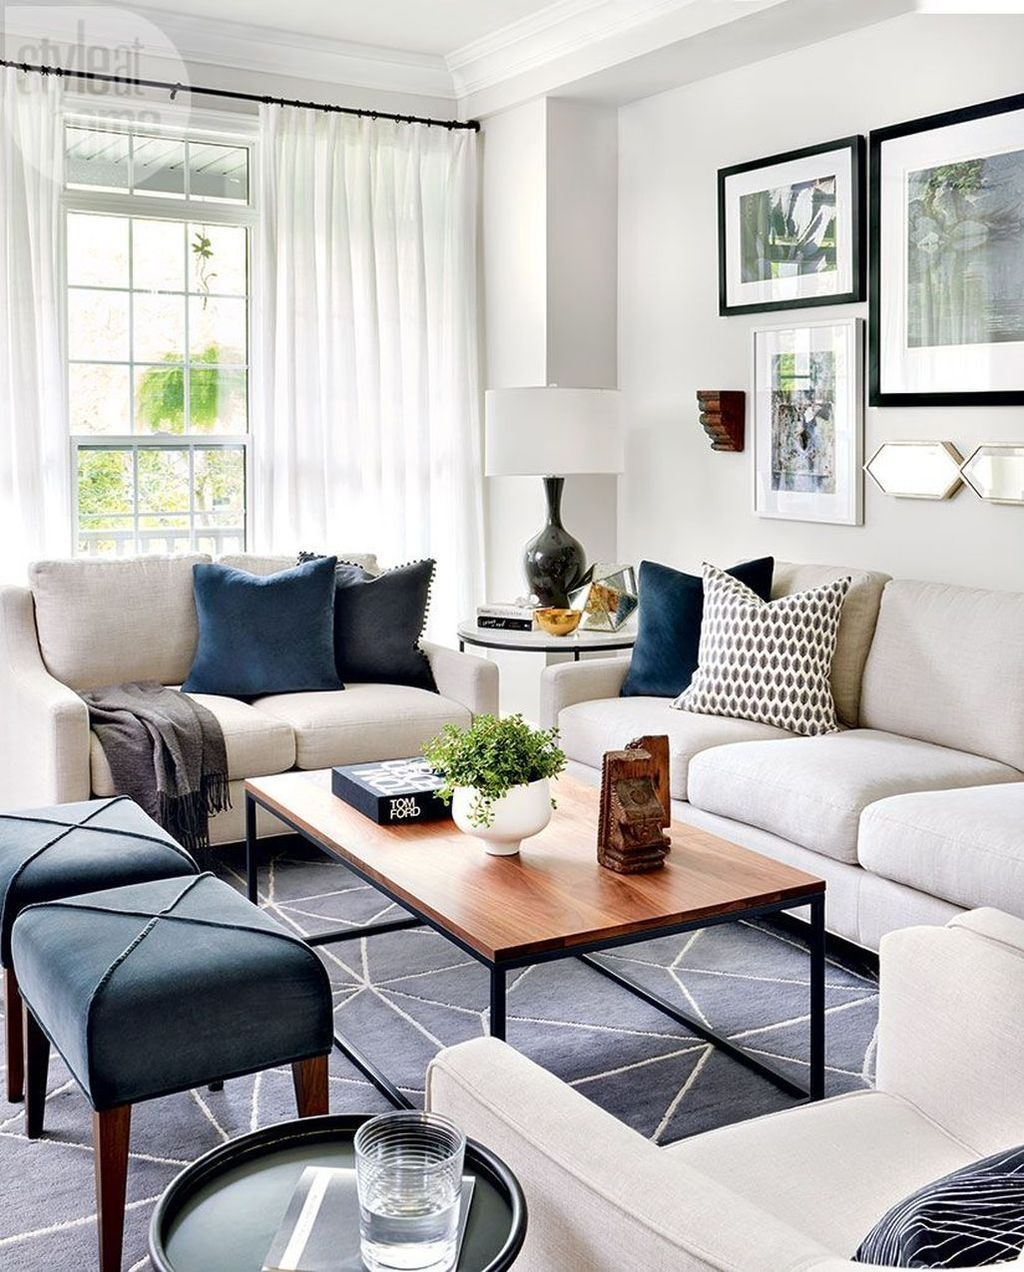 20 Small Living Room Ideas: 20+ Small Apartment Living Room Layout Ideas